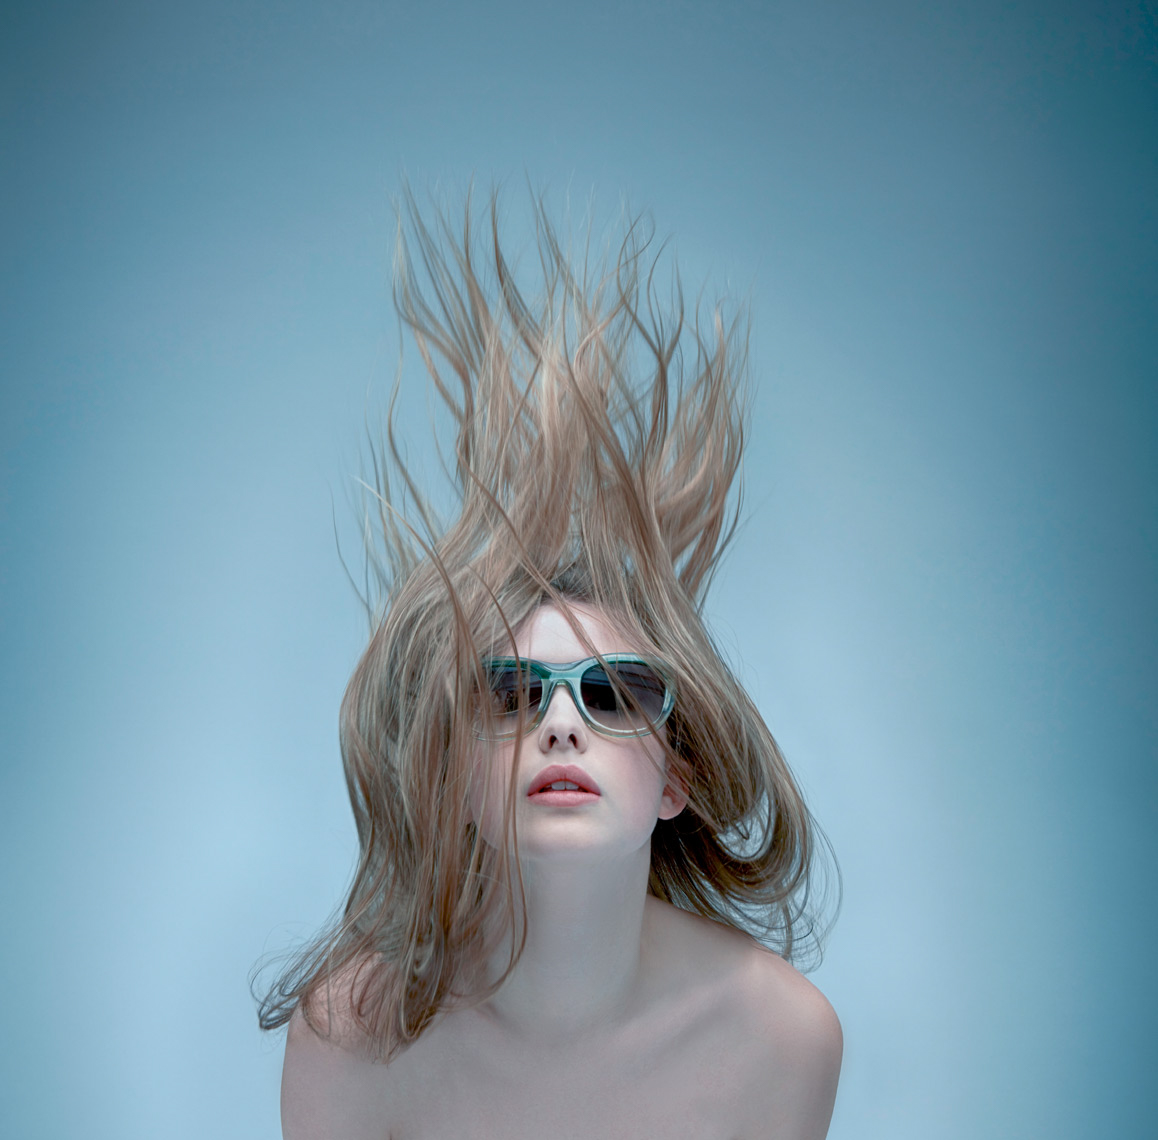 woman with dark shades and blue frames with hair blown up above her face